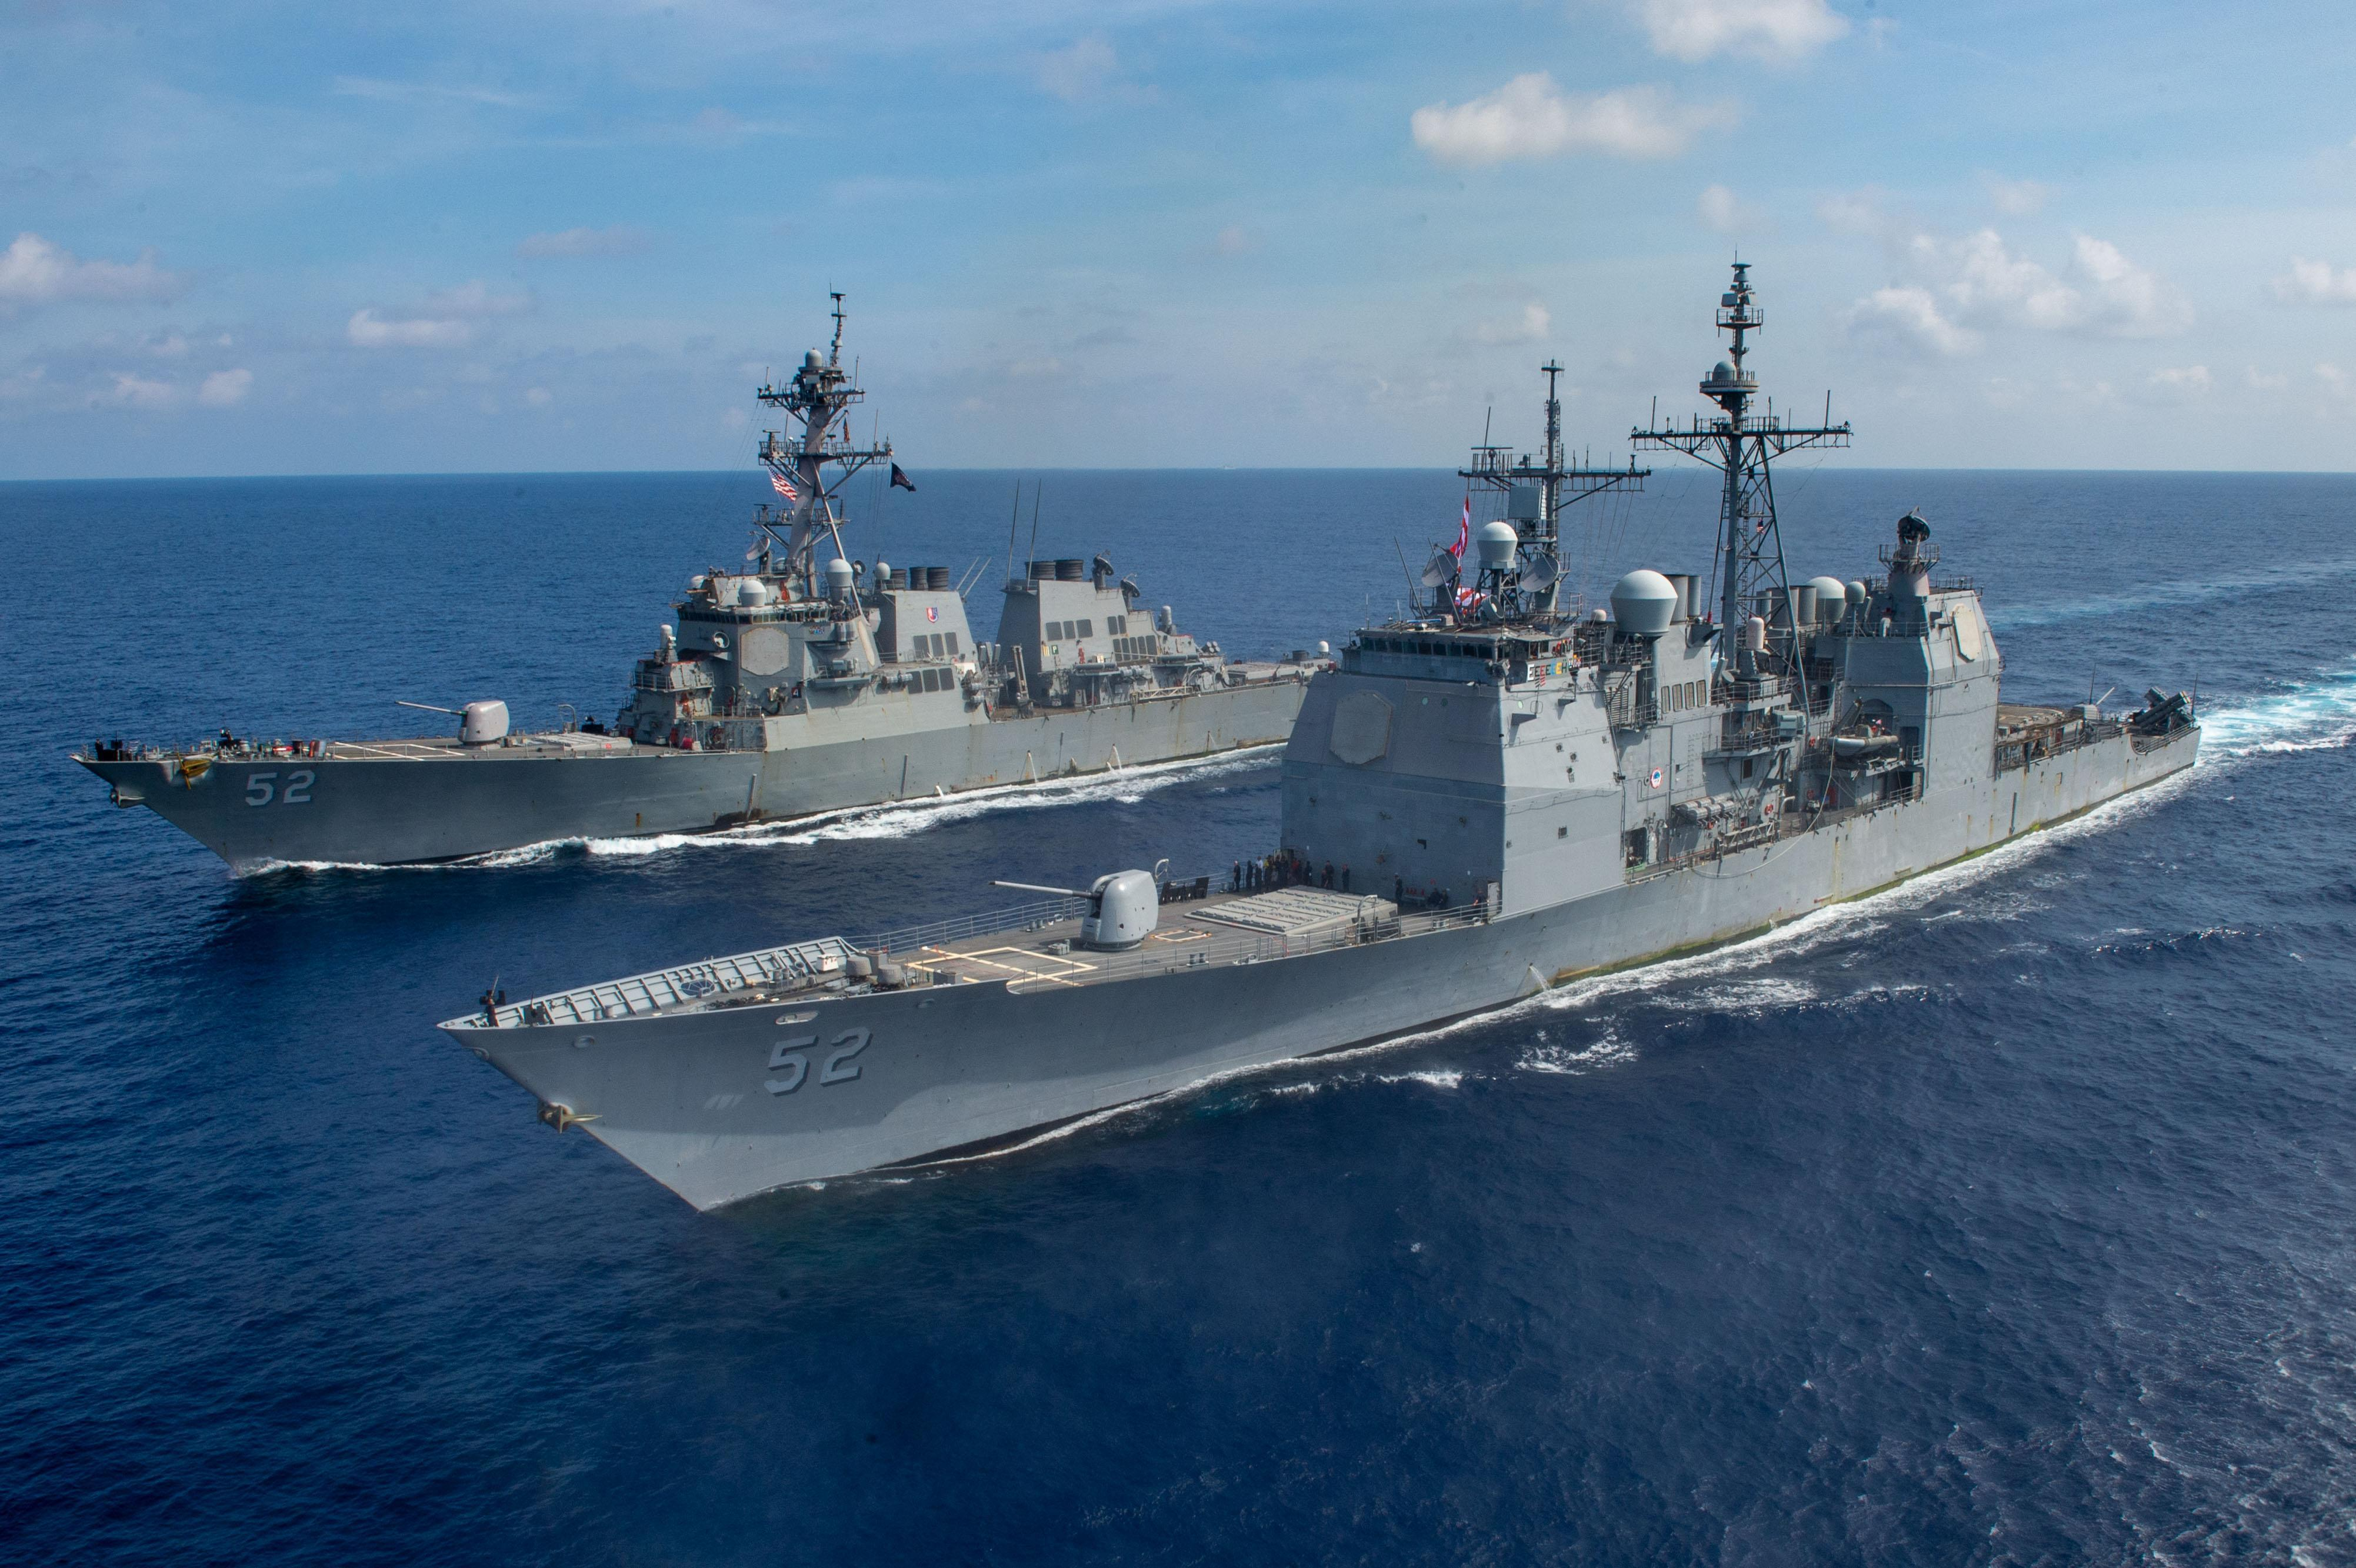 USS Bunker Hill (CG 52) Sails the South China Sea